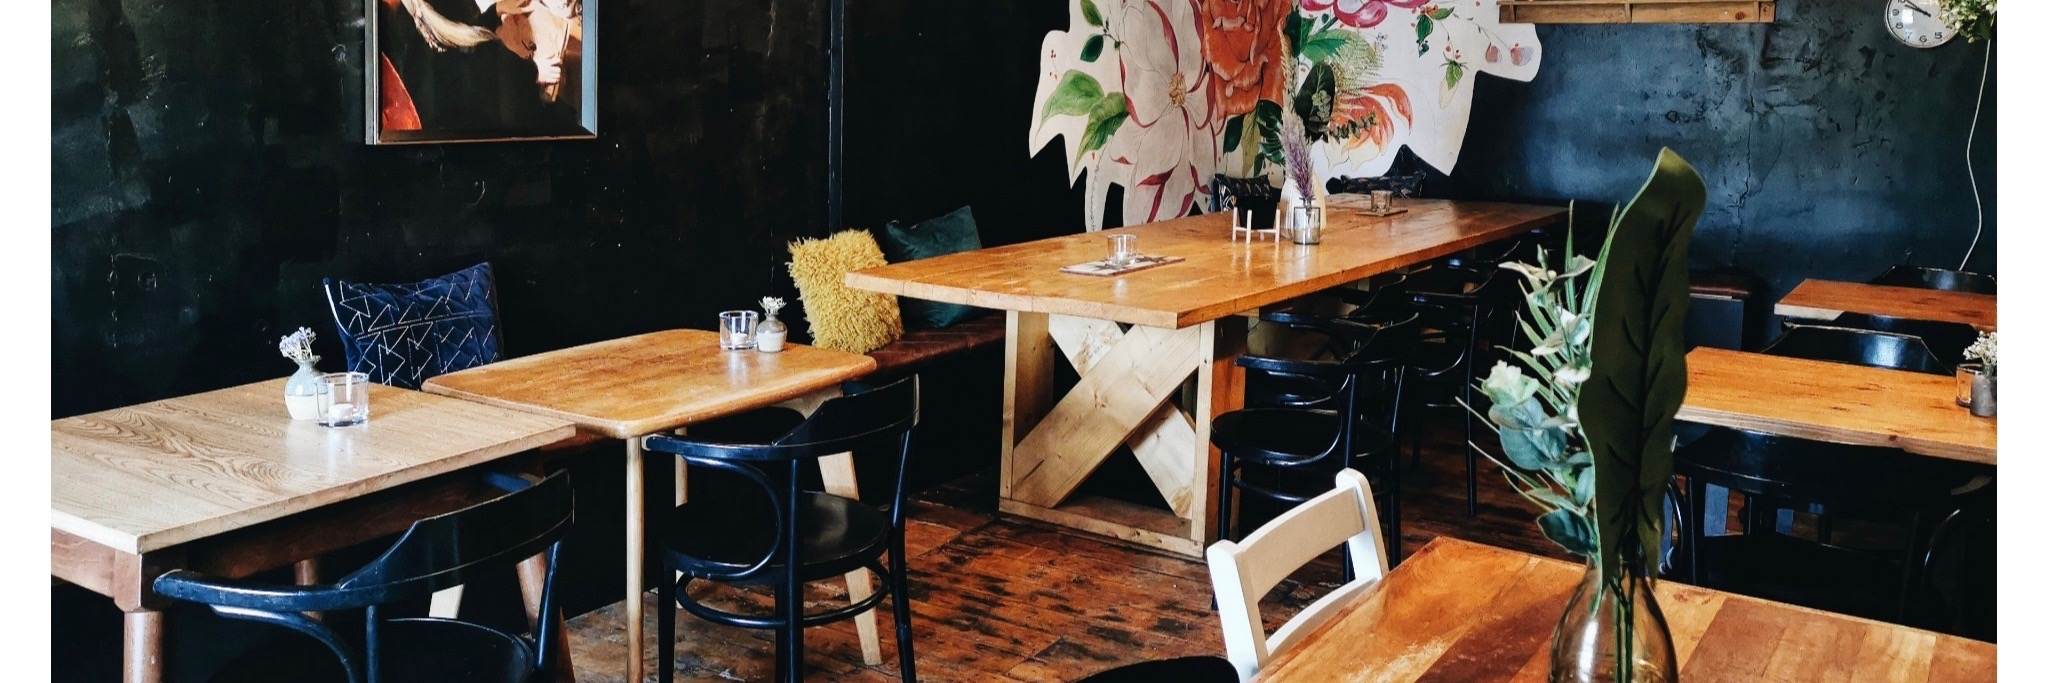 The rustic interior of The Kitchen, a restaurant and bar in West Houghton, Bolton